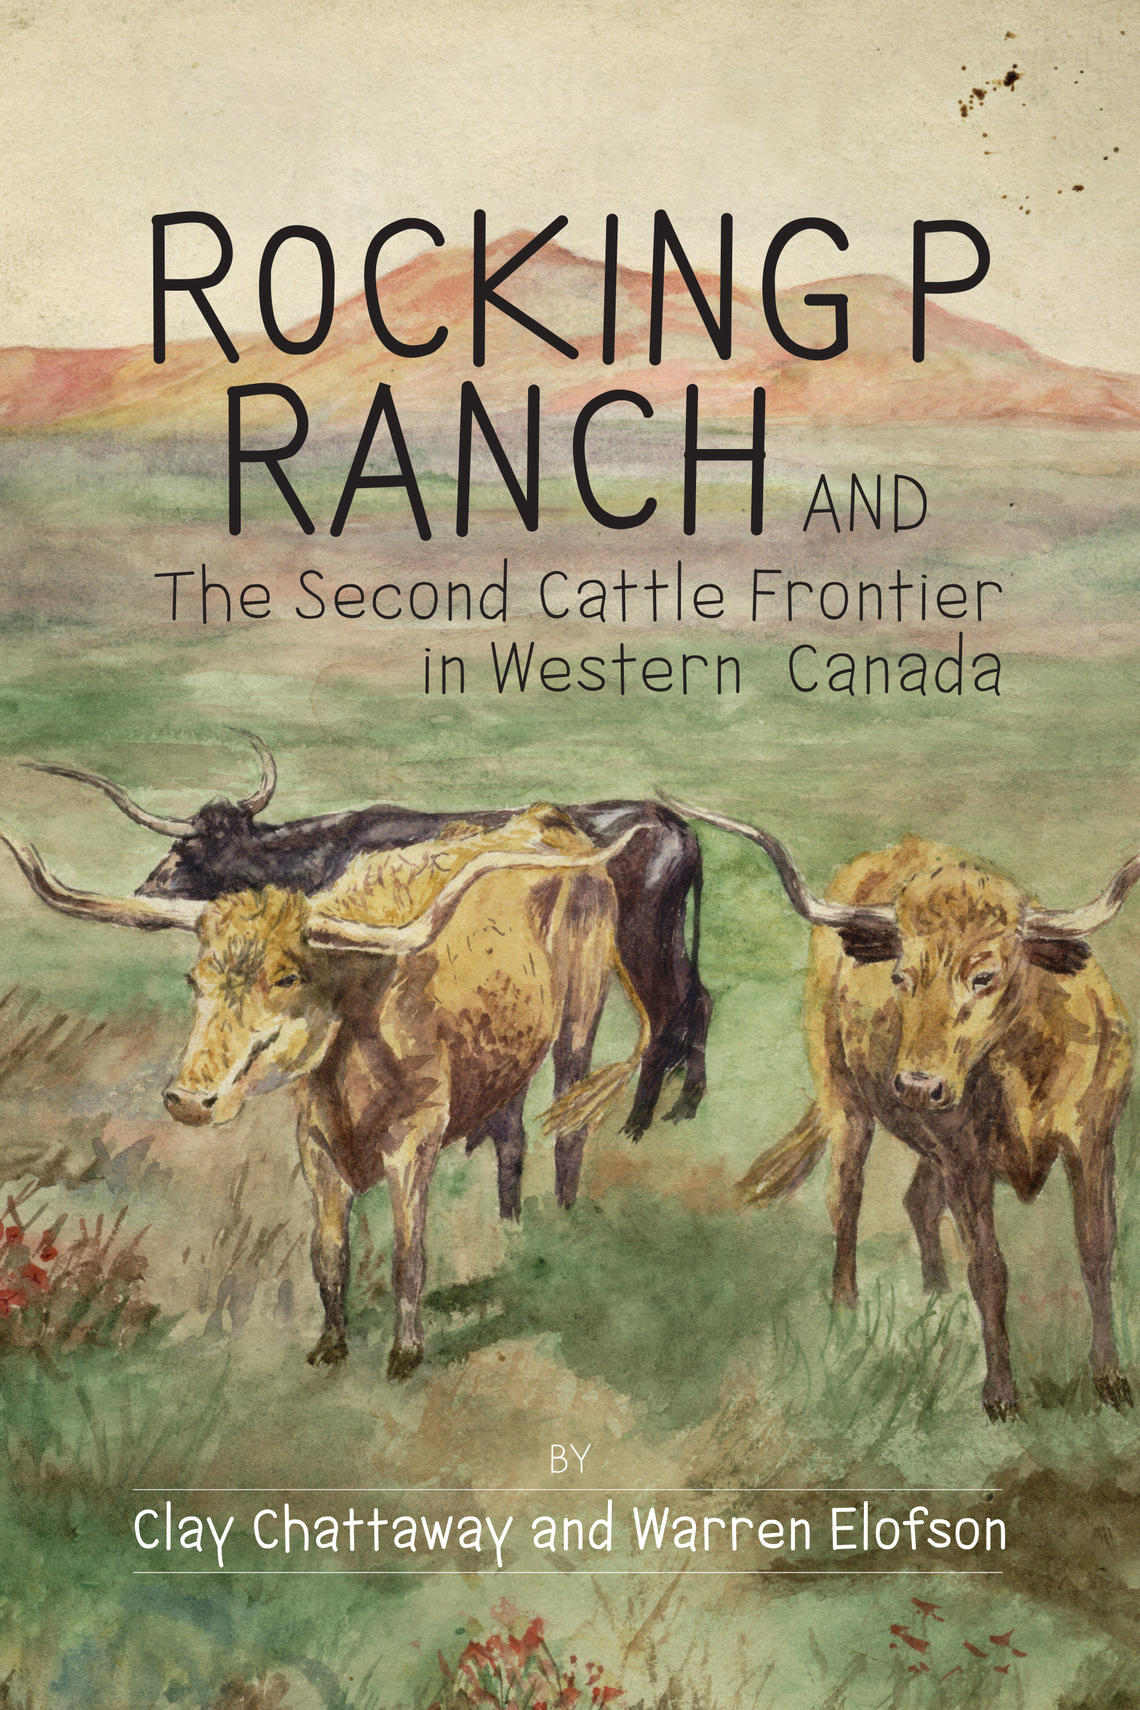 Rocking P Ranch and the Second Cattle Frontier in Western Canada examines the role of Rocking P Ranch in the history of southern Alberta. It is the 100th open access book published by the University of Calgary Press.